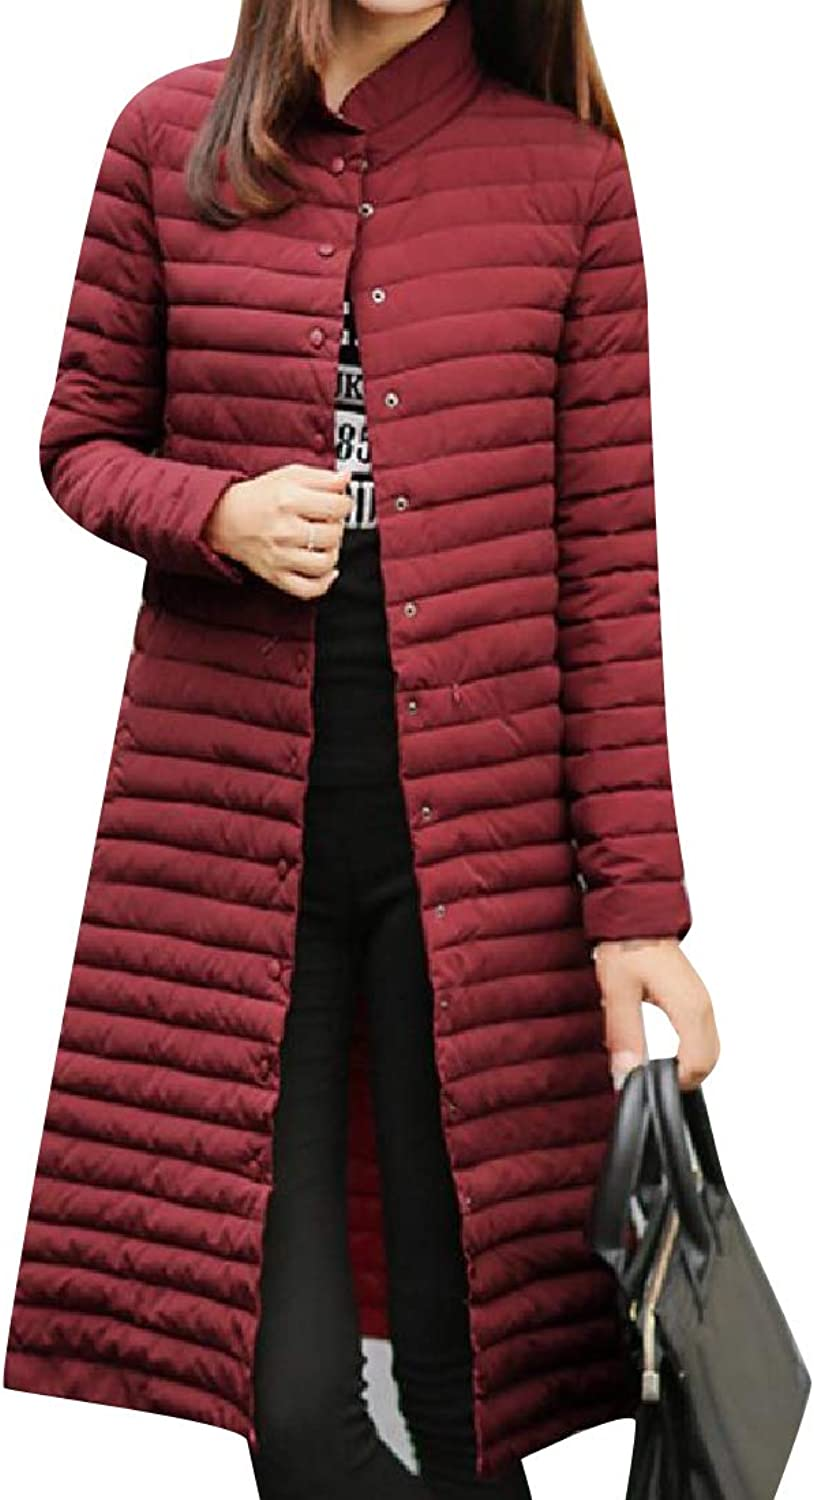 Mfasica Women Winter Warm Maxi and Midi Puffy Jacket with Pockets